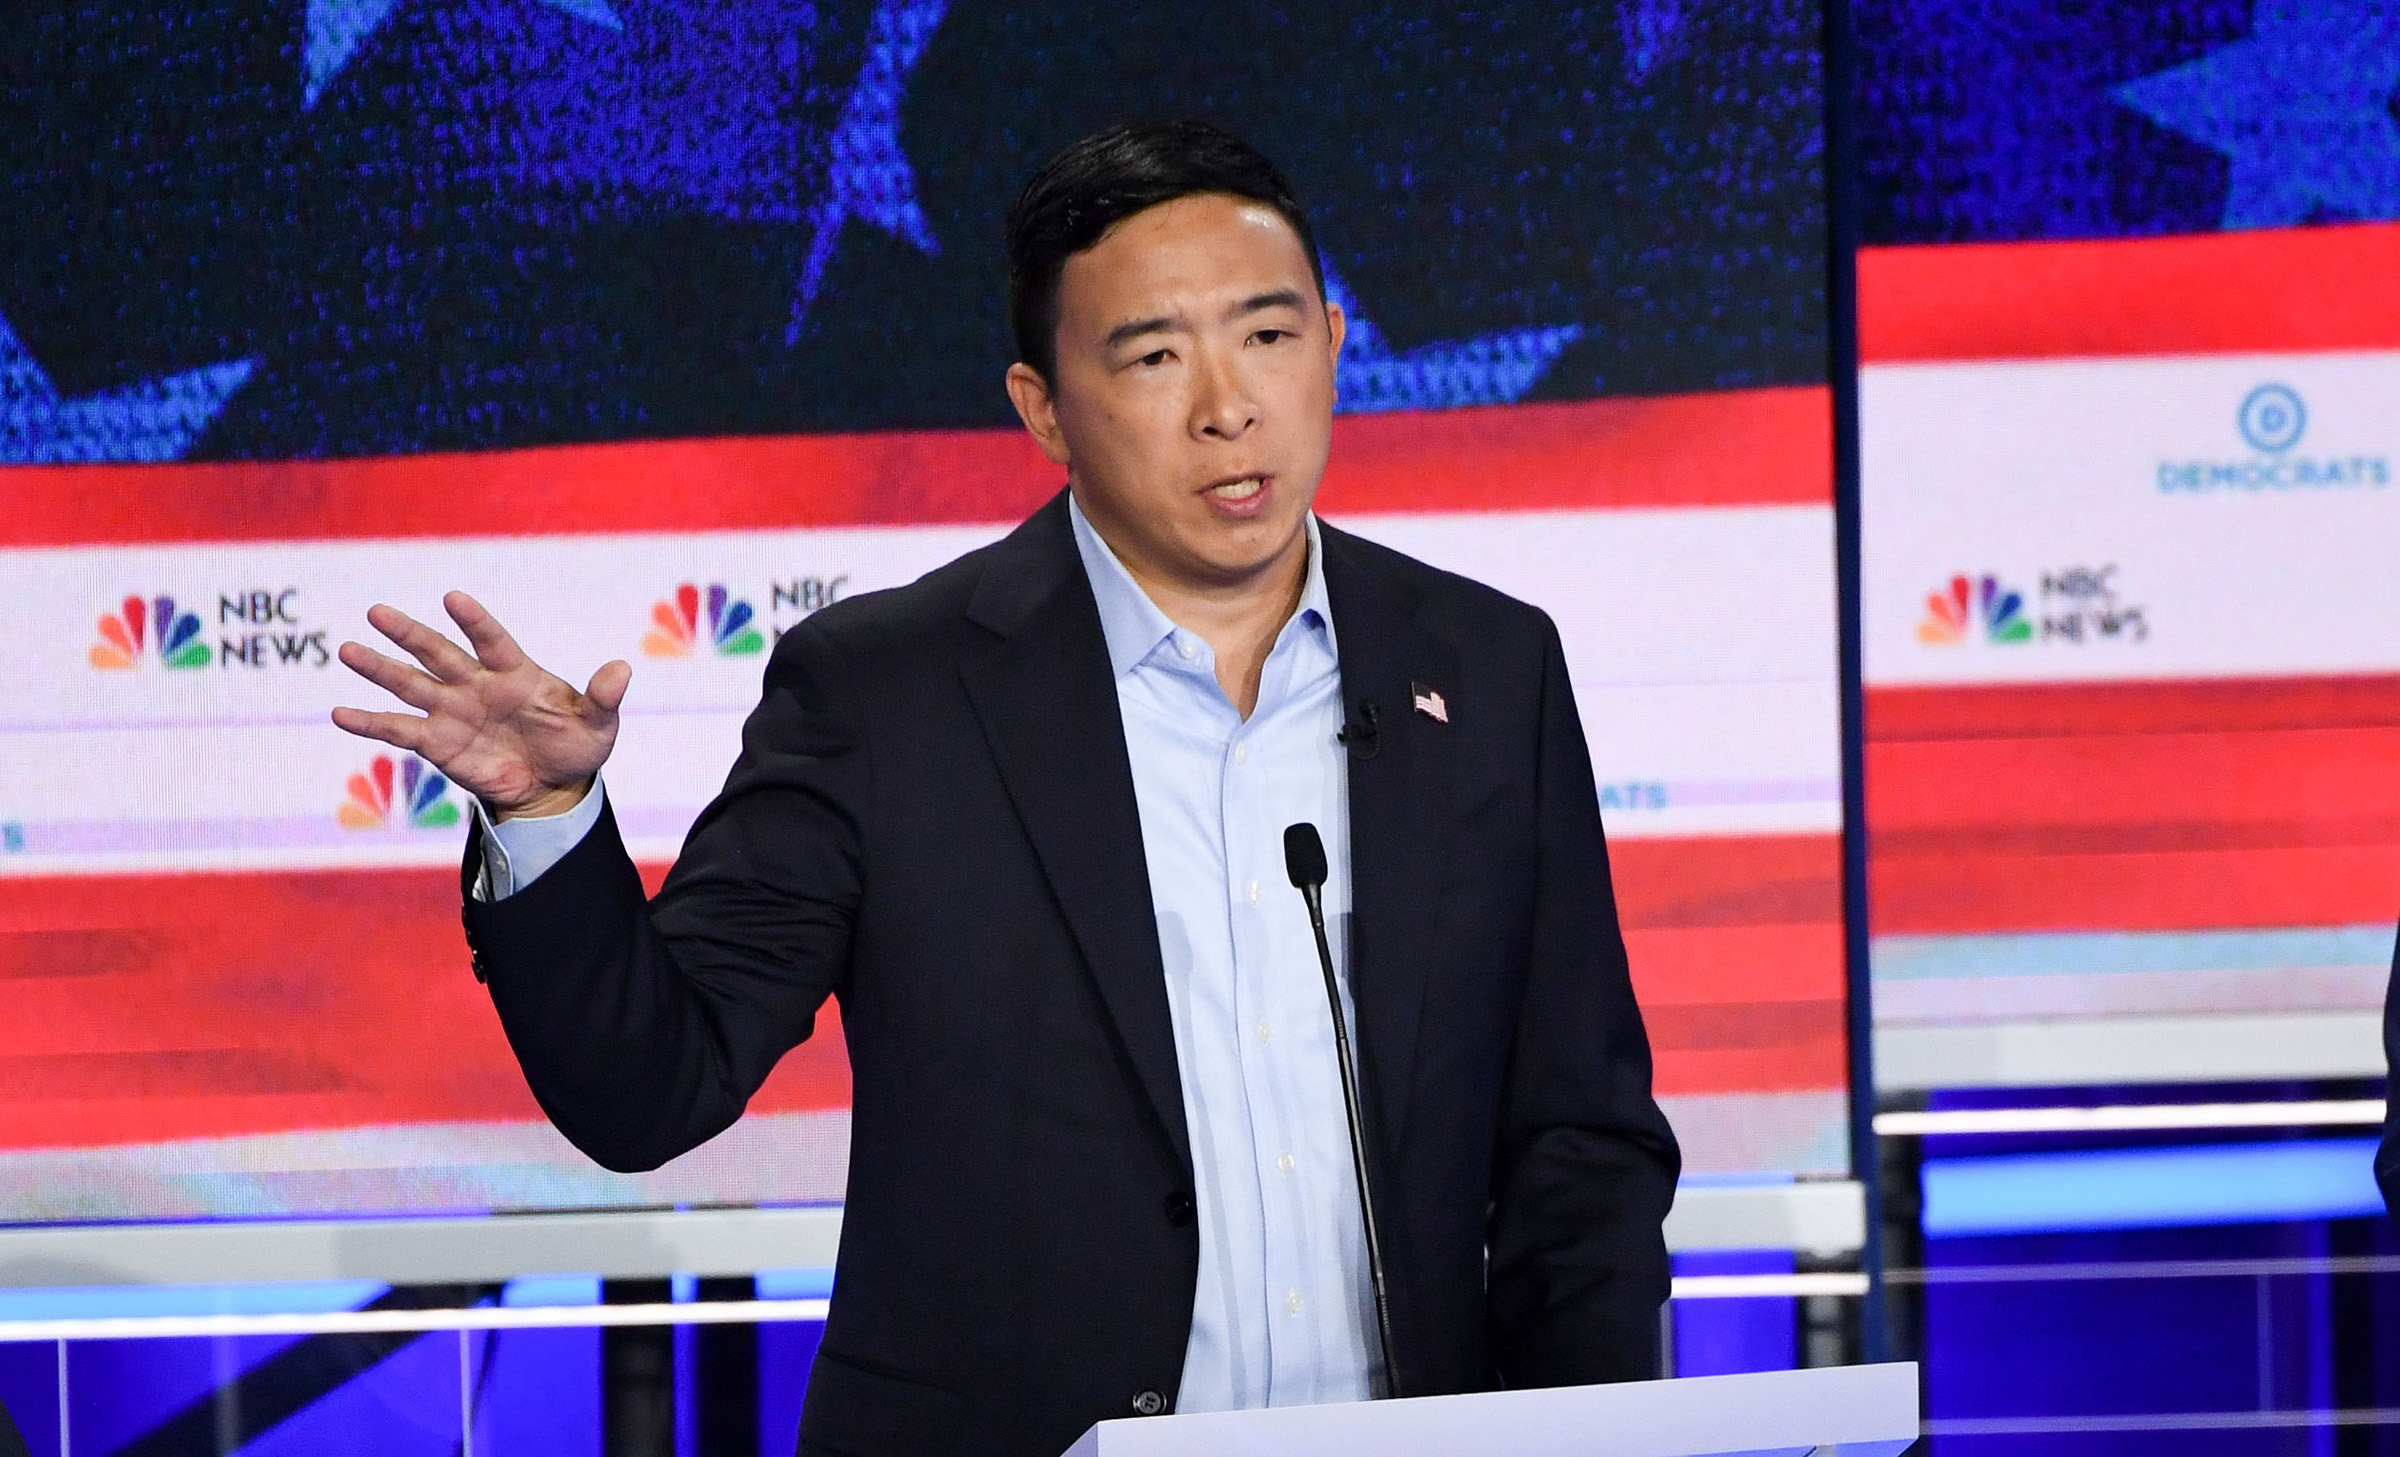 Democratic presidential hopeful US entrepreneur Andrew Yang speaks in the second Democratic primary debate of the 2020 presidential campaign season hosted by NBC News at the Adrienne Arsht Center for the Performing Arts in Miami, Florida, June 27, 2019.